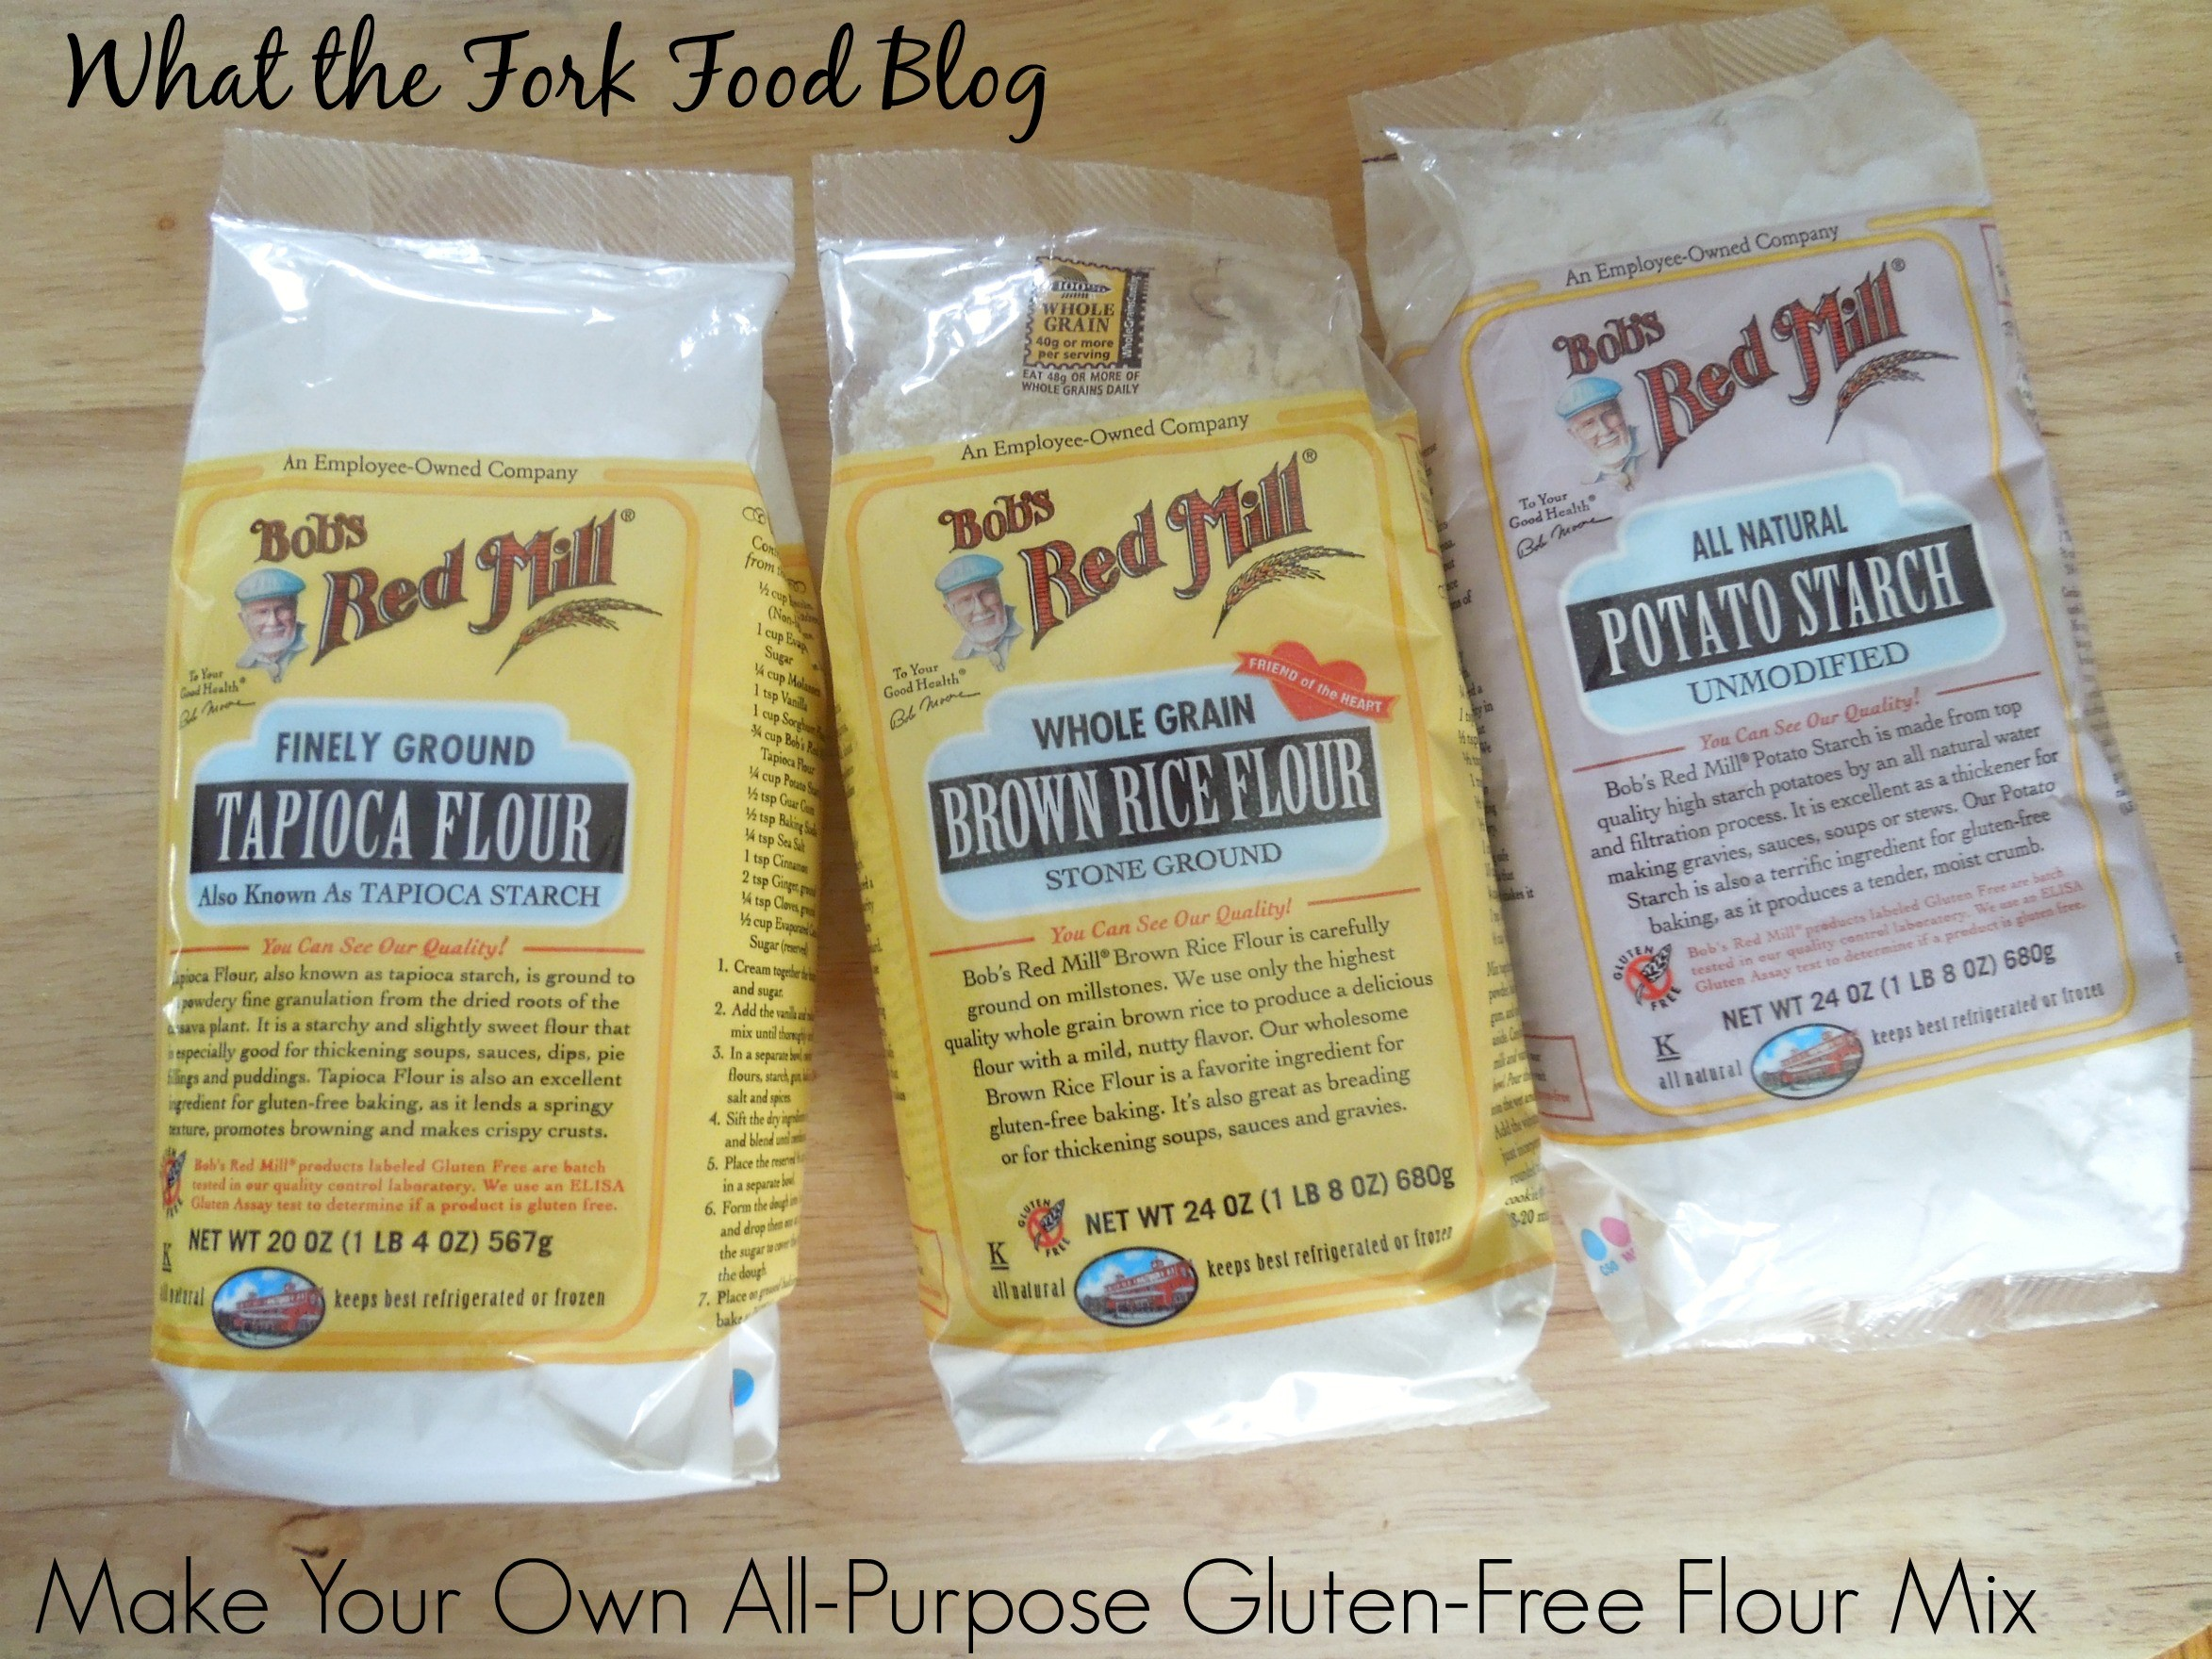 All purpose gluten free flour mix